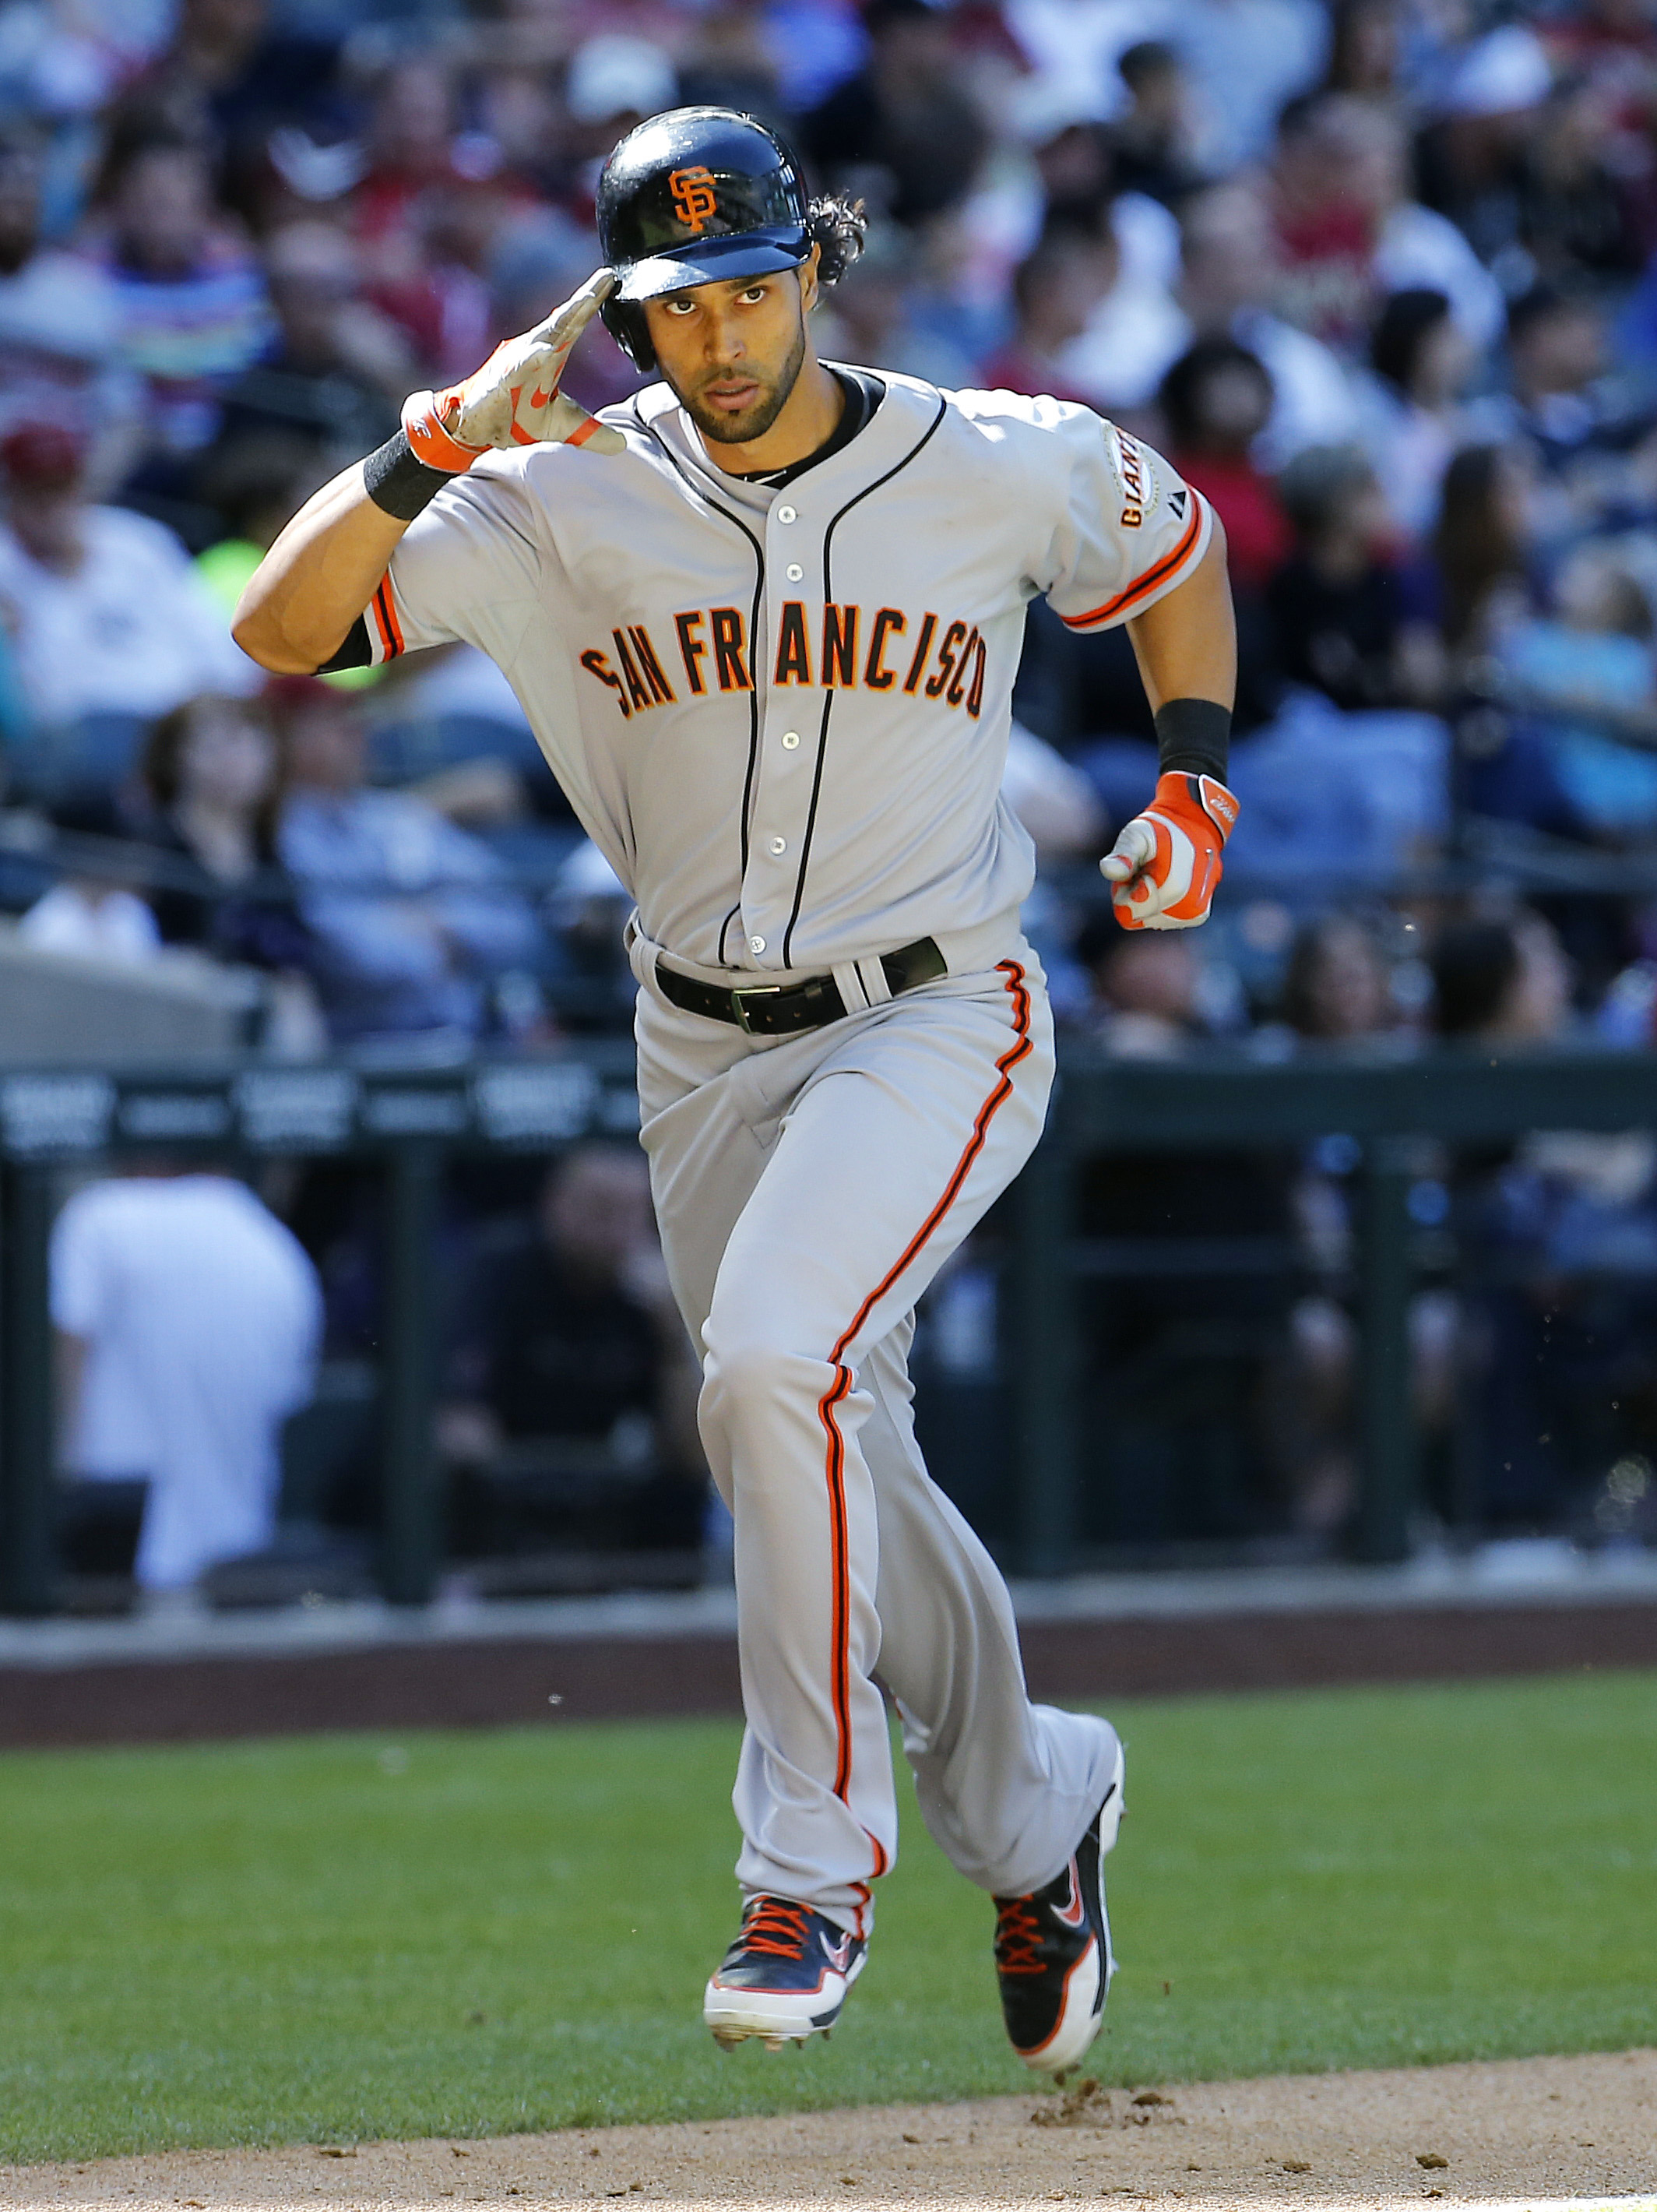 Pagan's 3-run homer leads Giants past Arizona 8-5